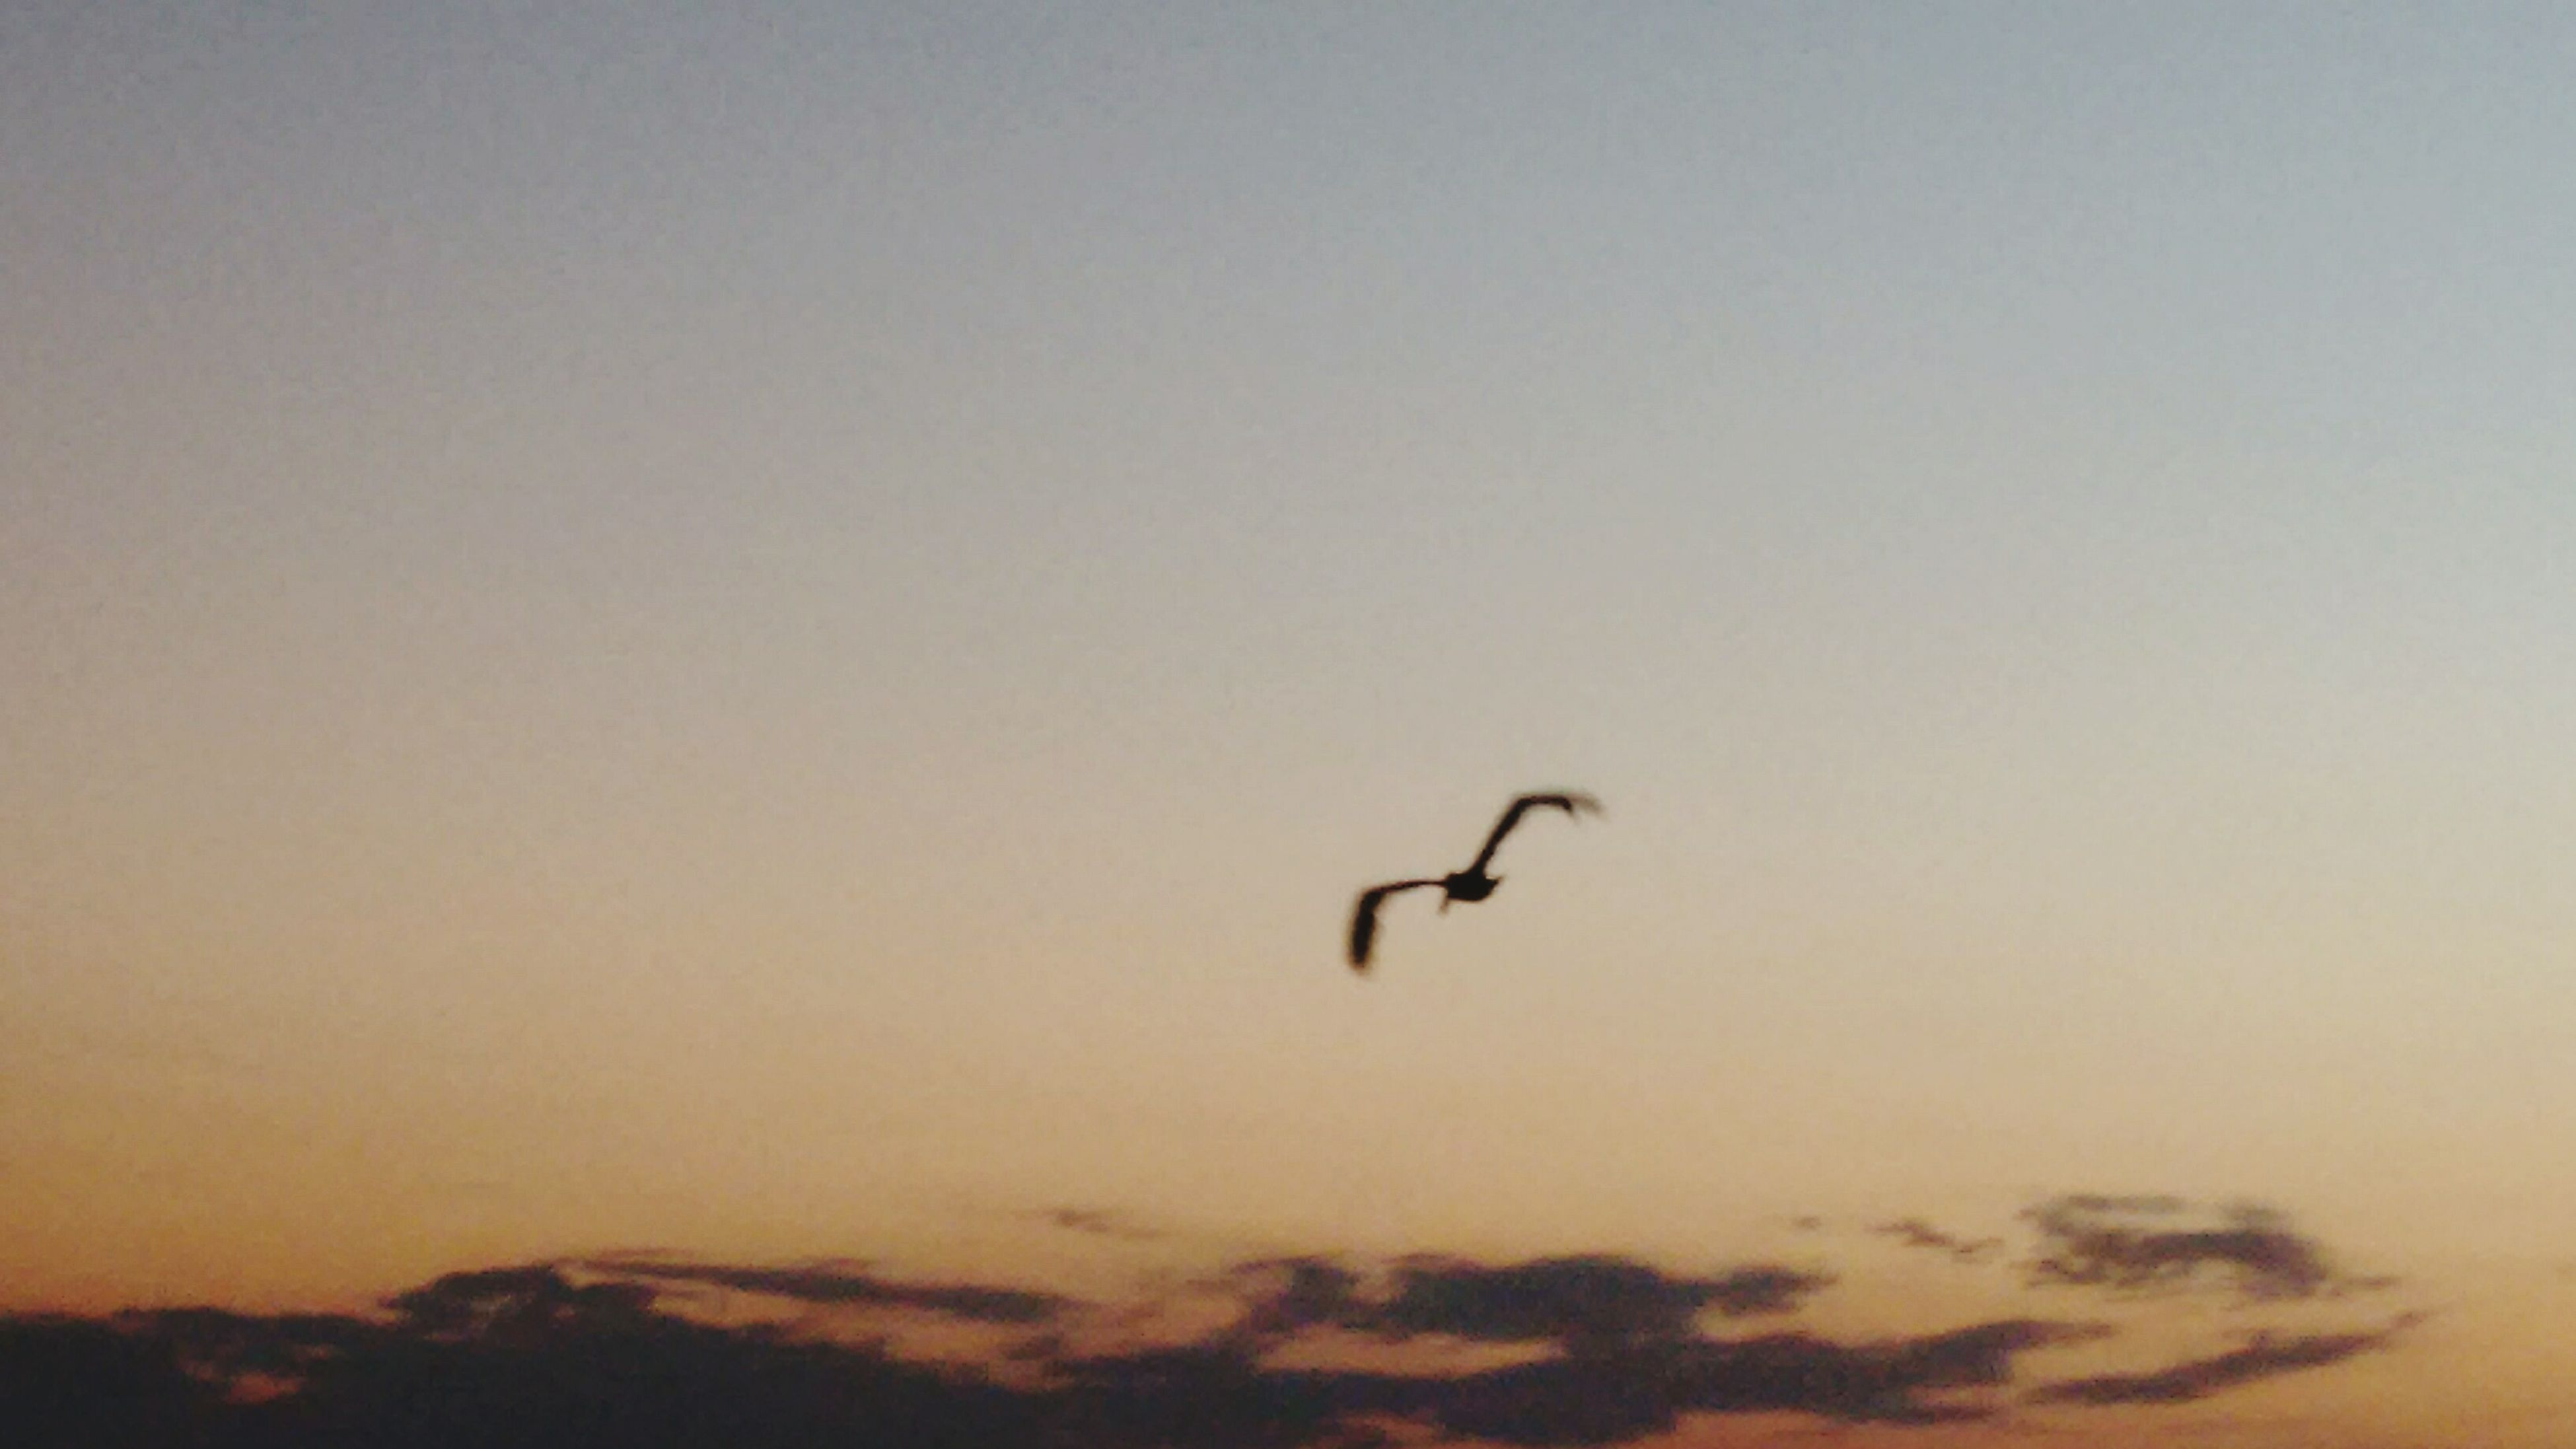 bird, animal themes, flying, animals in the wild, one animal, wildlife, silhouette, low angle view, spread wings, copy space, sky, nature, mid-air, sunset, beauty in nature, scenics, clear sky, tranquility, tranquil scene, outdoors